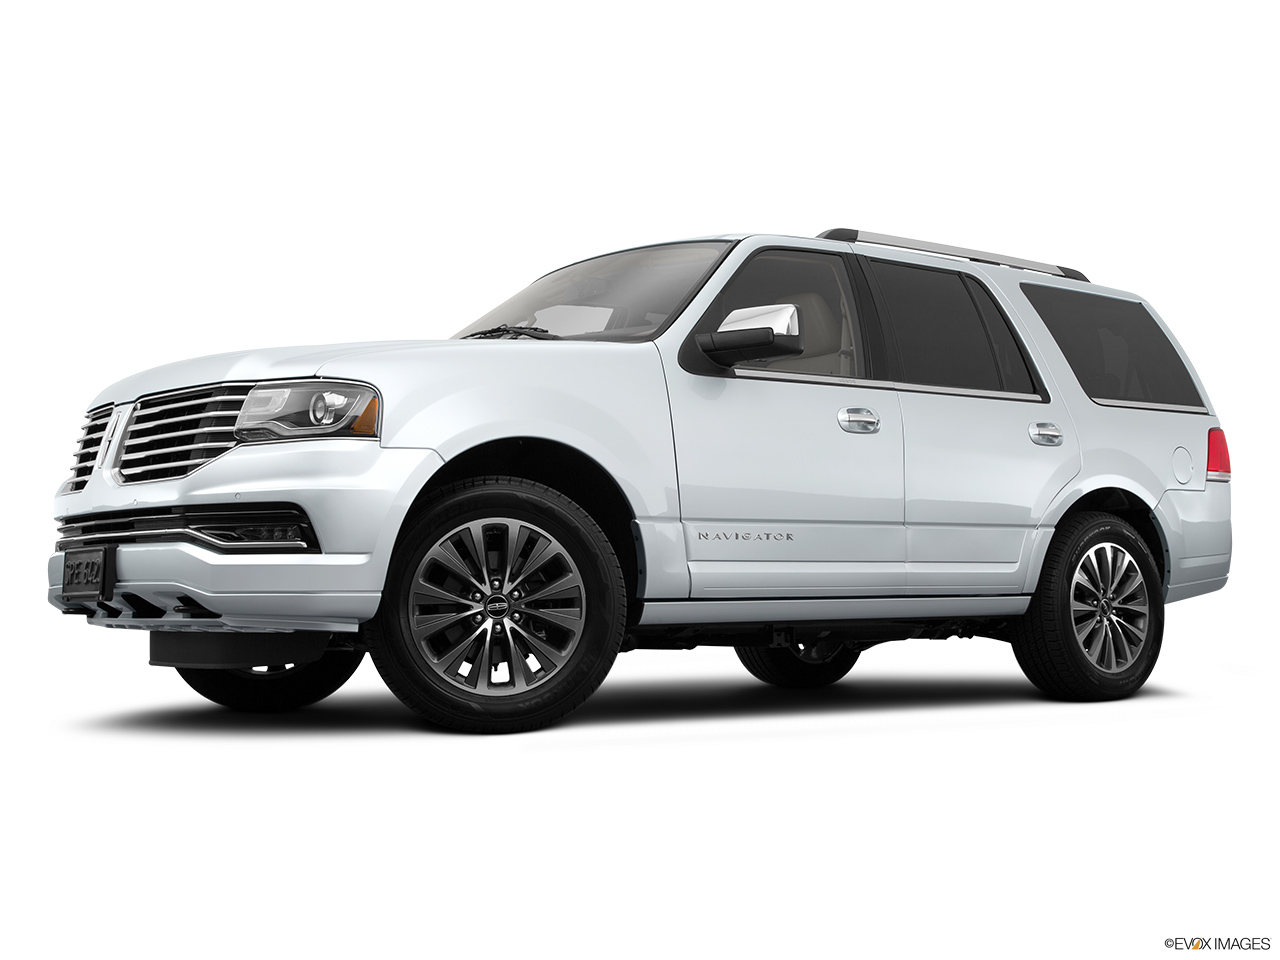 2015 Lincoln Navigator Base Low/wide front 5/8.